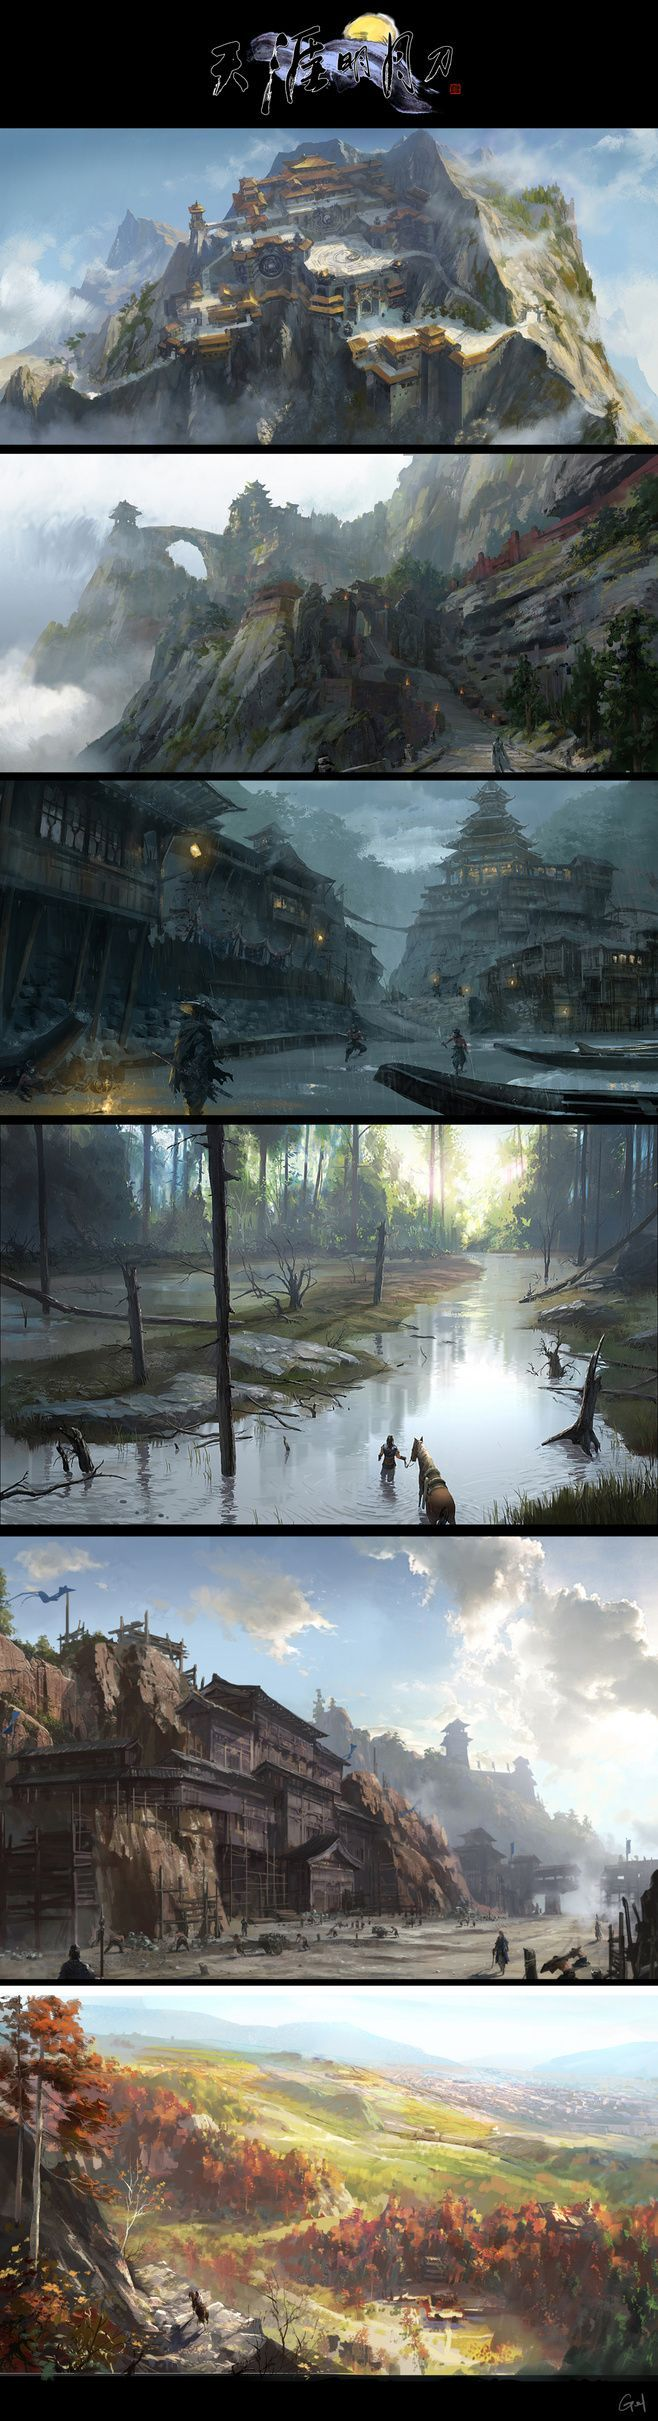 The third one is really strong #FantasyLandscape